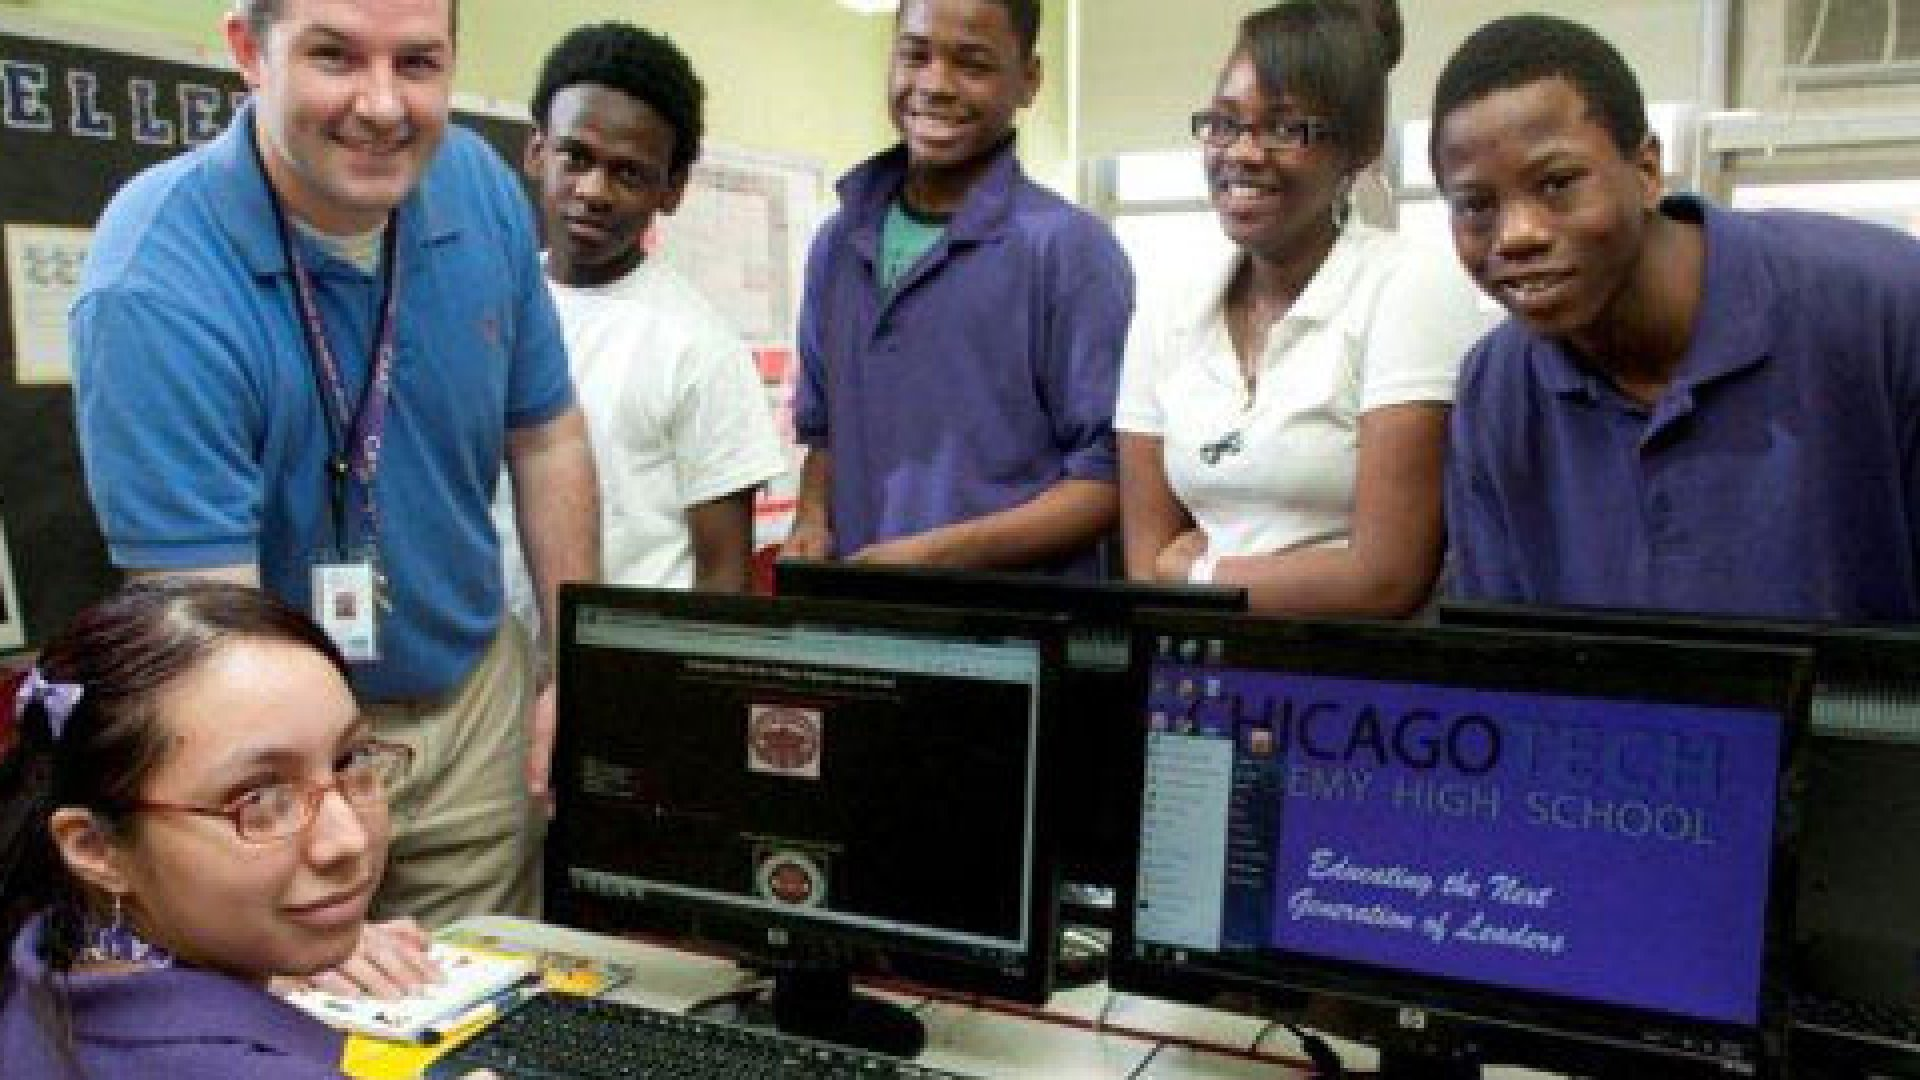 Chicago's Tech Academy is famous for it's entrepreneurial and tech heavy curriculum which partners with more than 100 tech companies to provide field trips and mentorship.